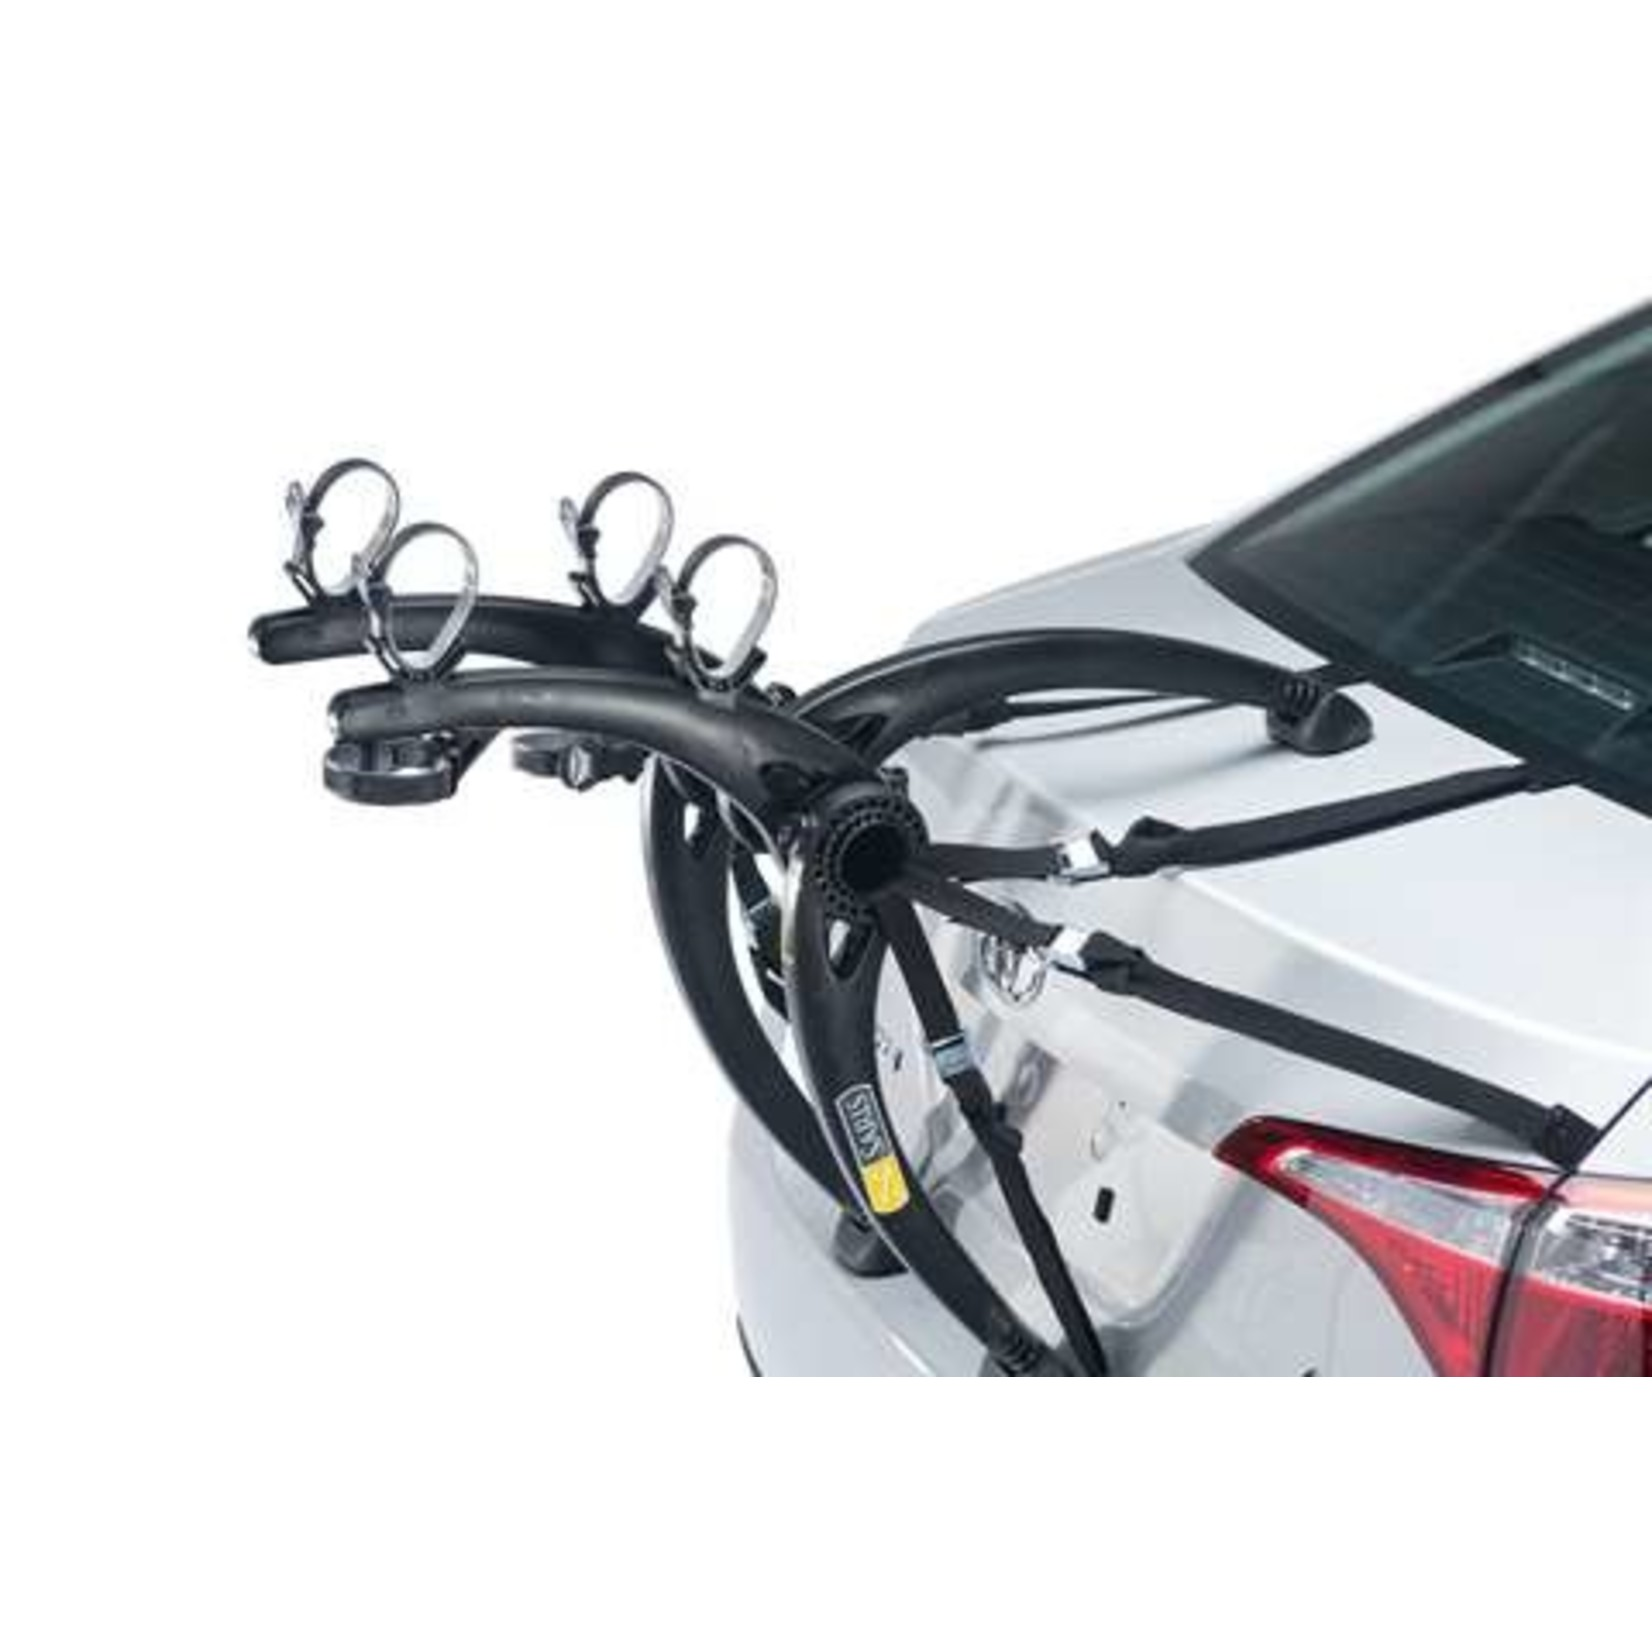 Saris Bones Trunk Rack: 2 Bike